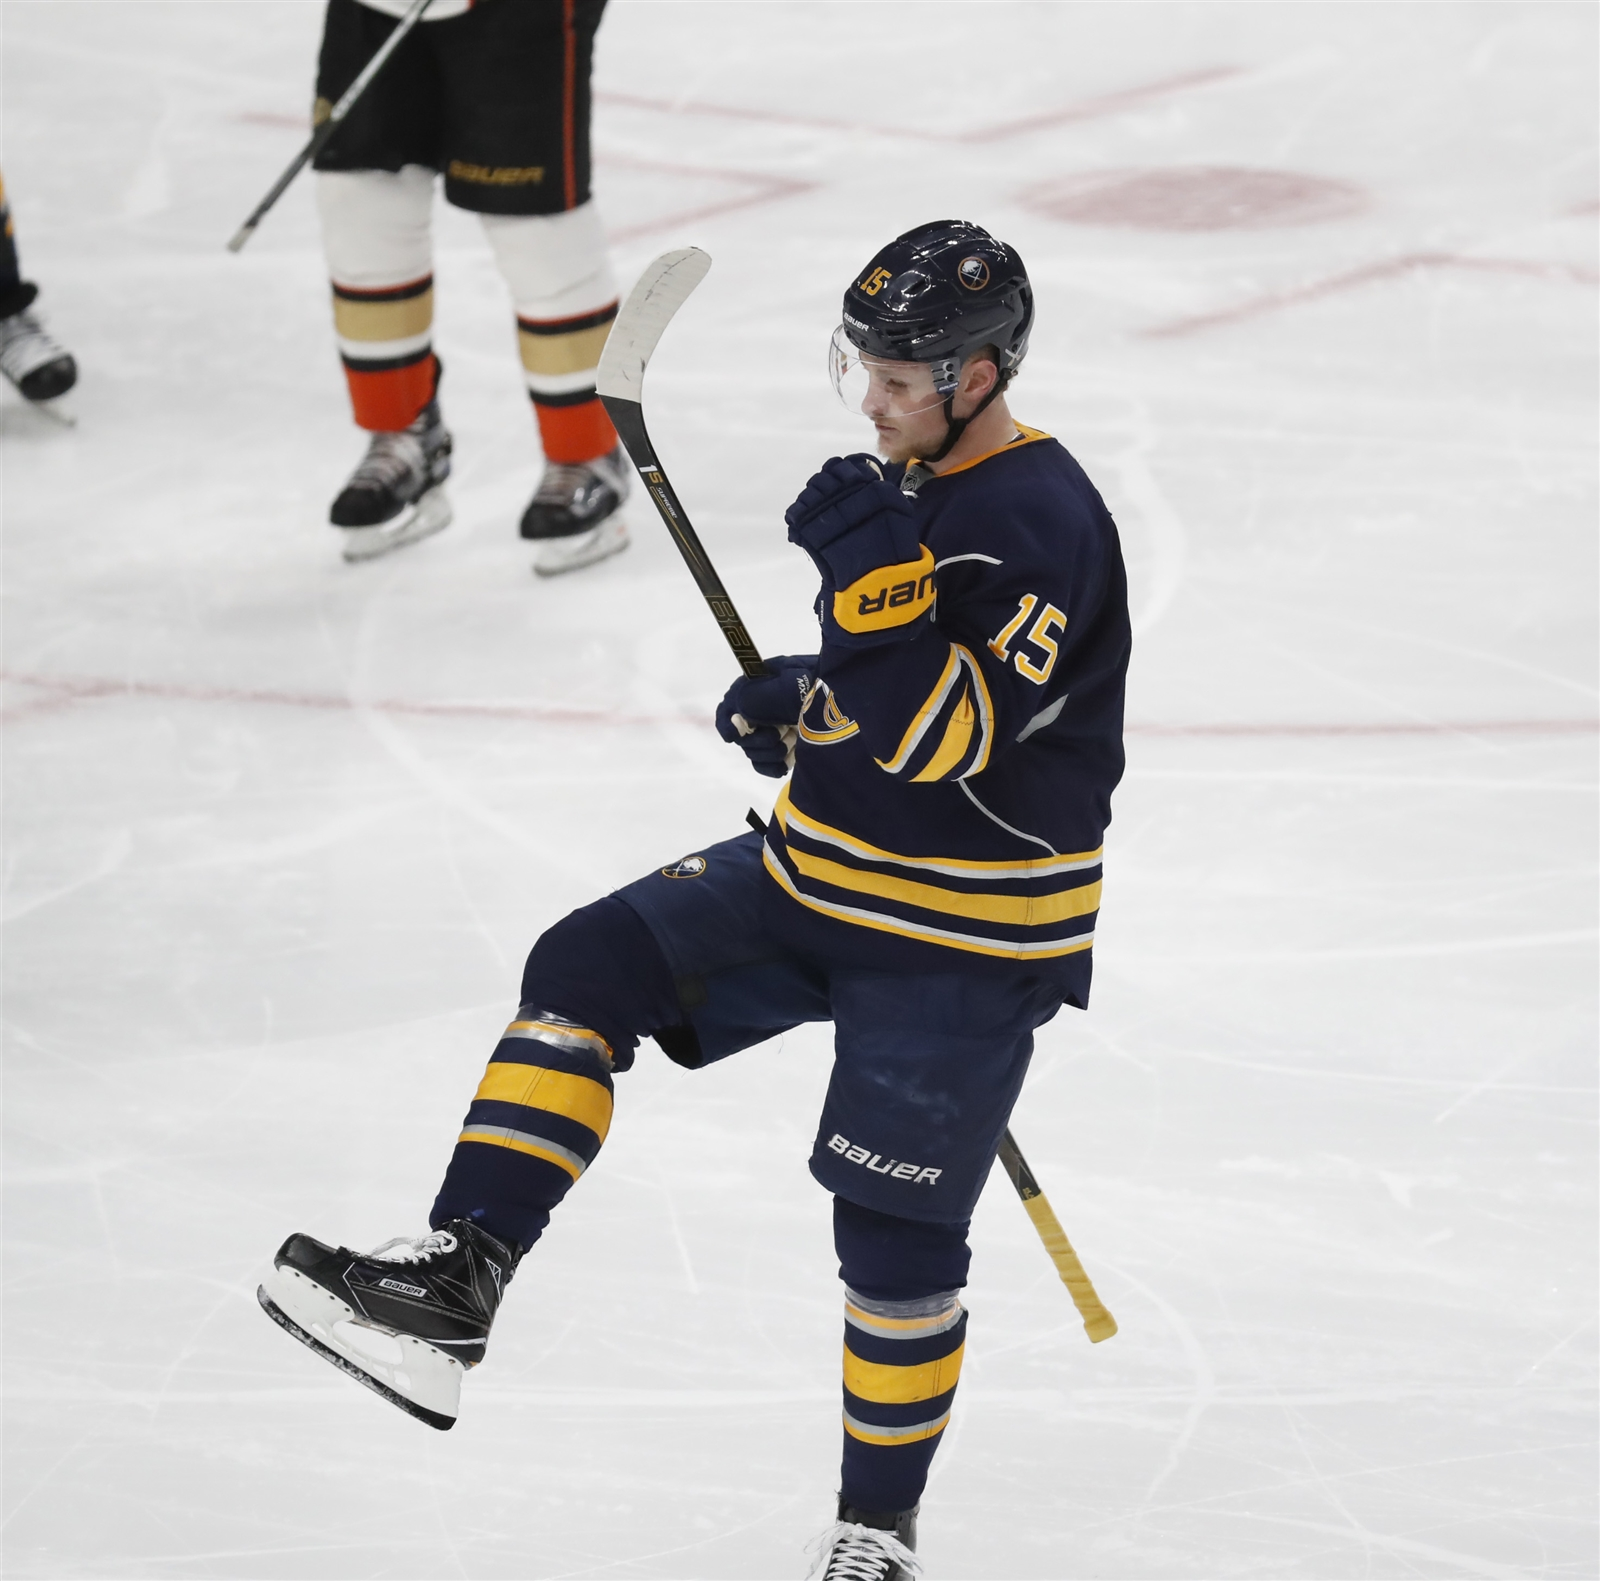 Jack Eichel scored Thursday, a celebration that certainly carried out of town. (Harry Scull Jr./Buffalo News)